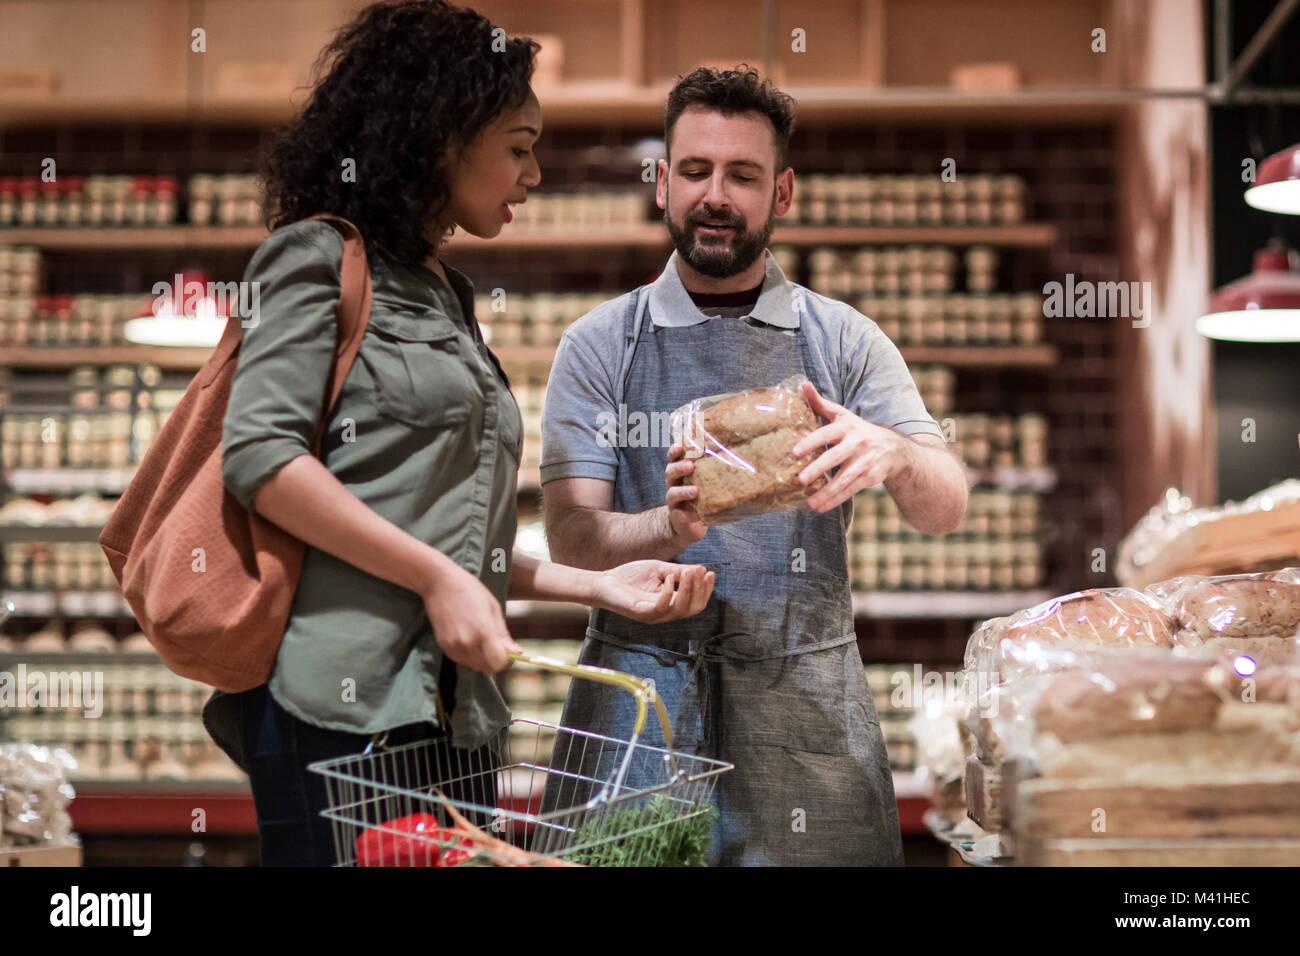 Baker helping customer in grocery store Banque D'Images